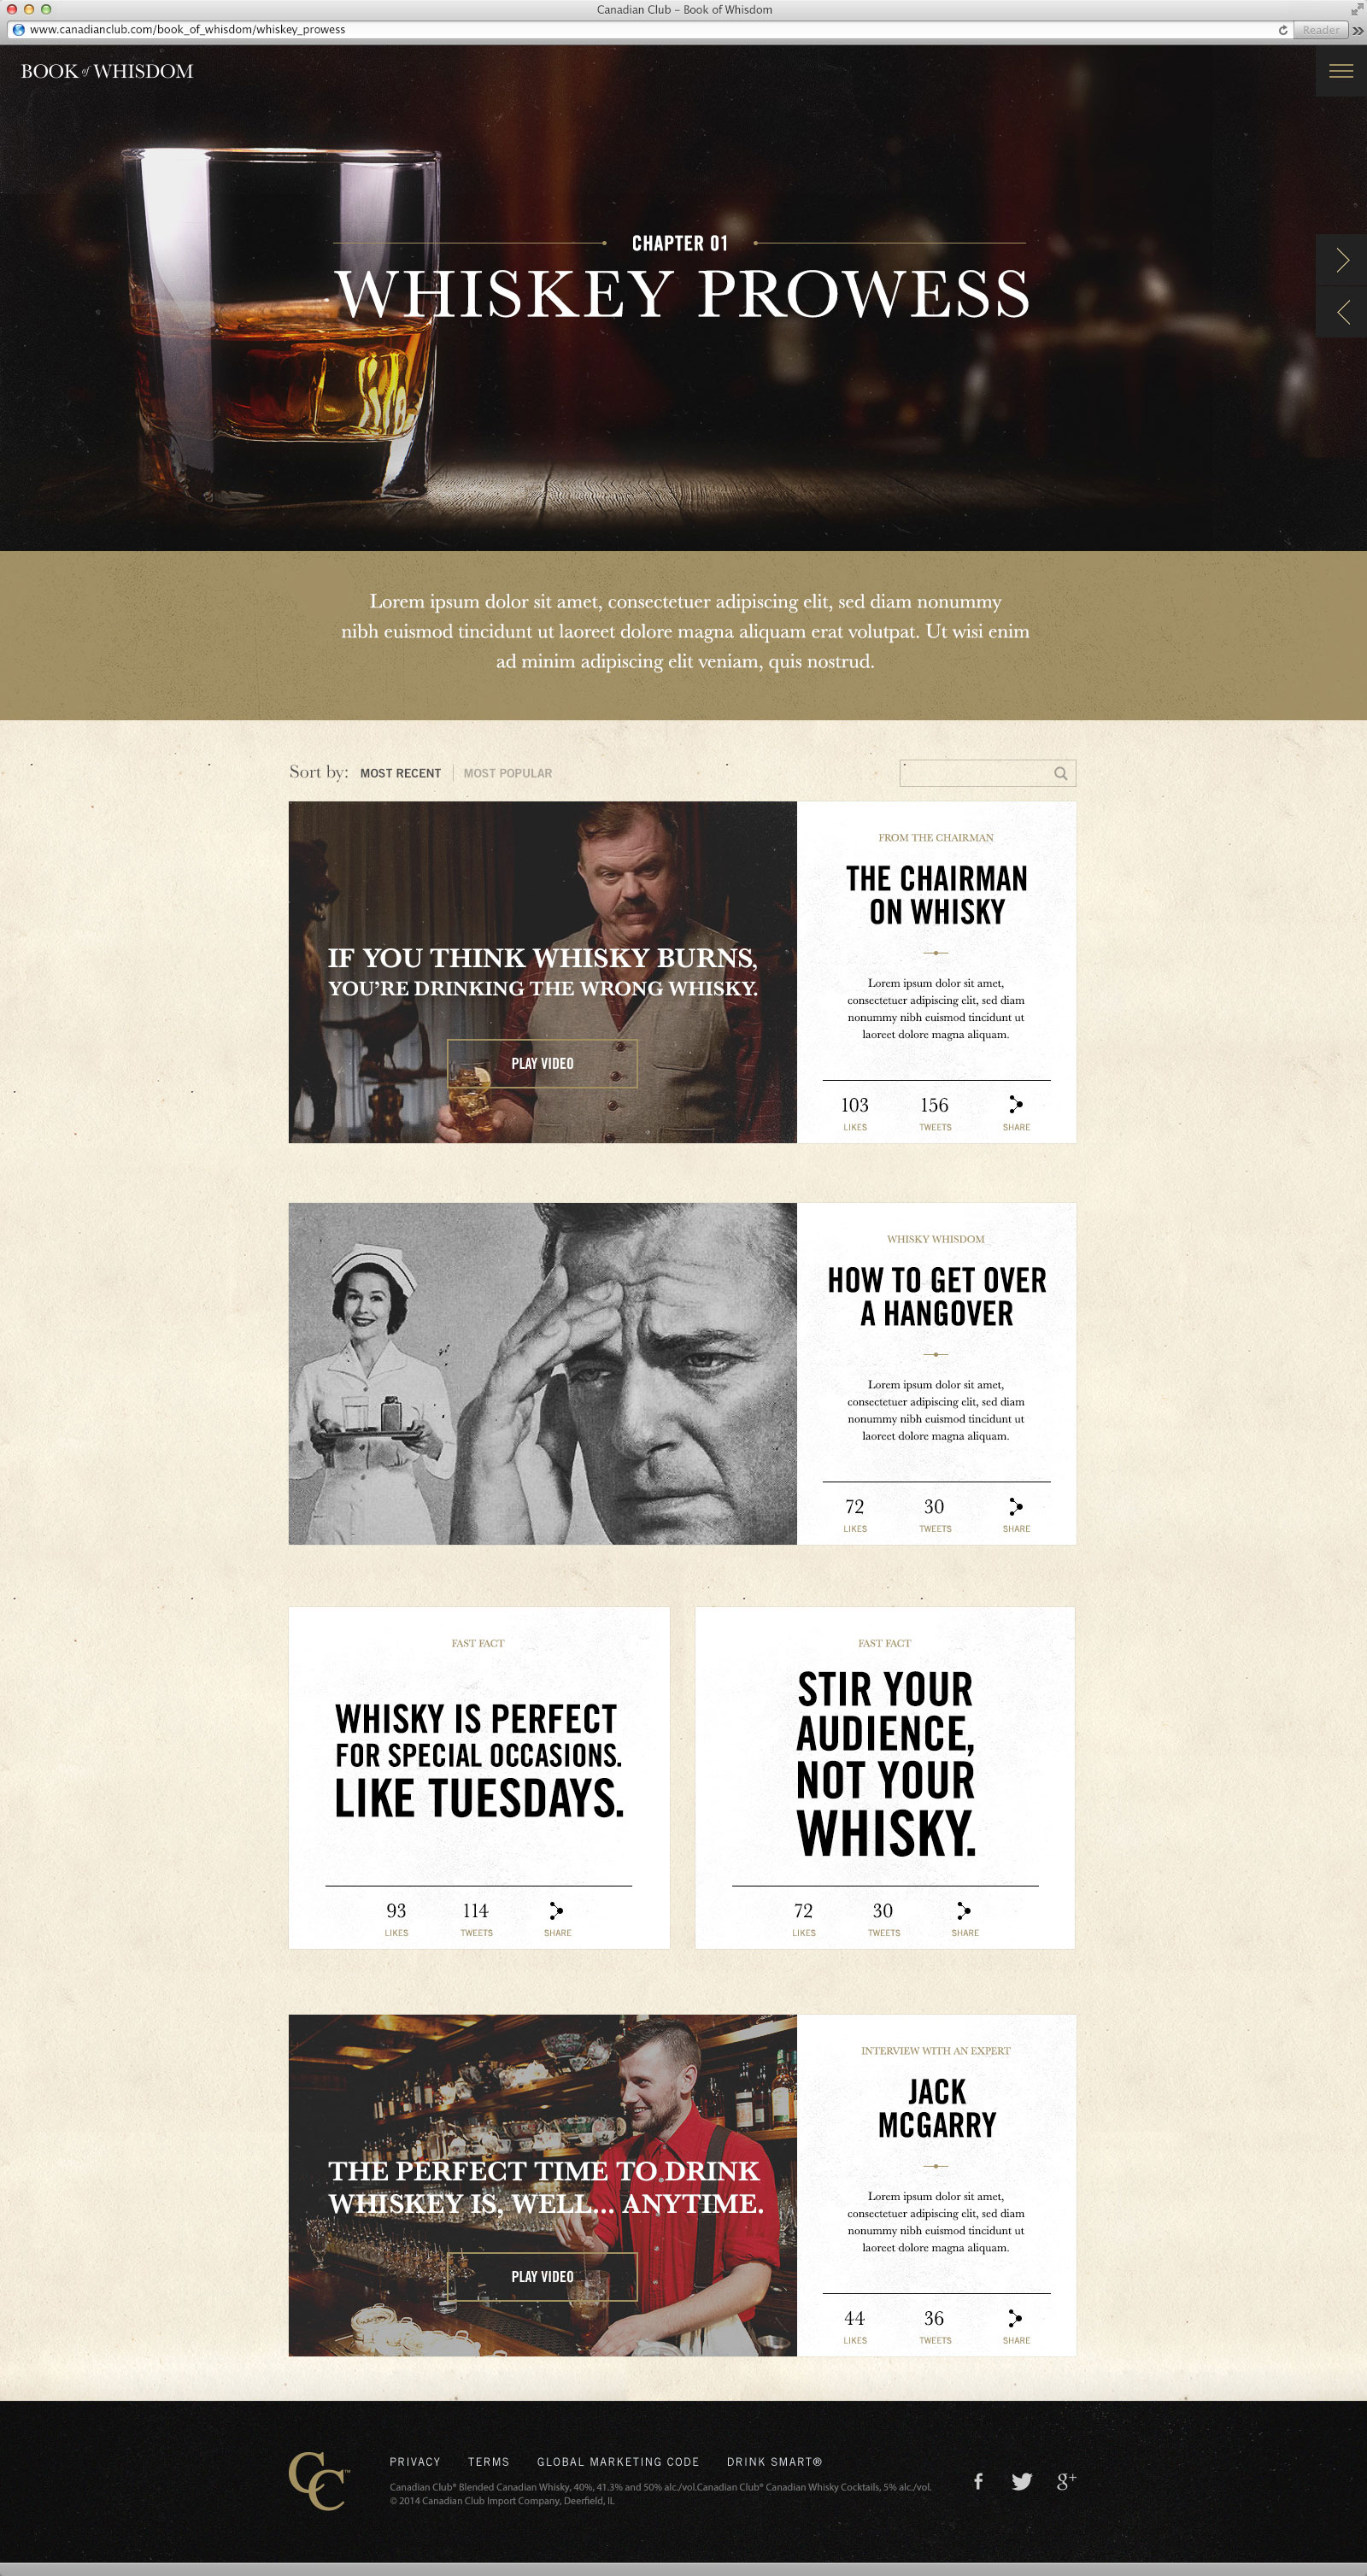 CanadianClub_WhiskeyWhisdom_Desktop_Interior_BLB_001f